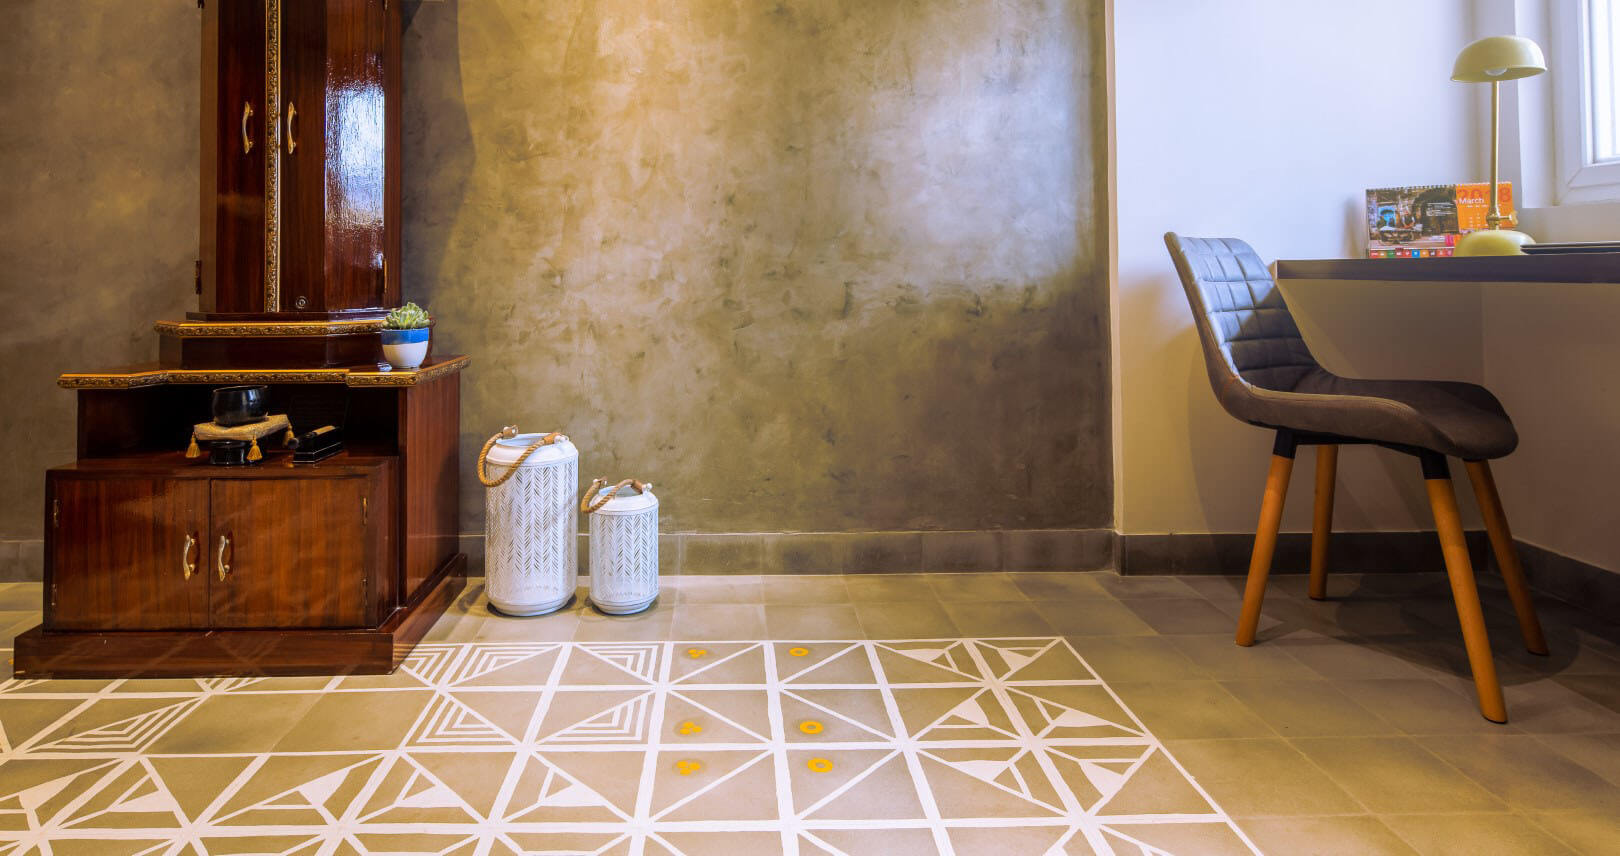 Bharat Floorings makes handcrafted cement floors. Each floor is unique and customized.